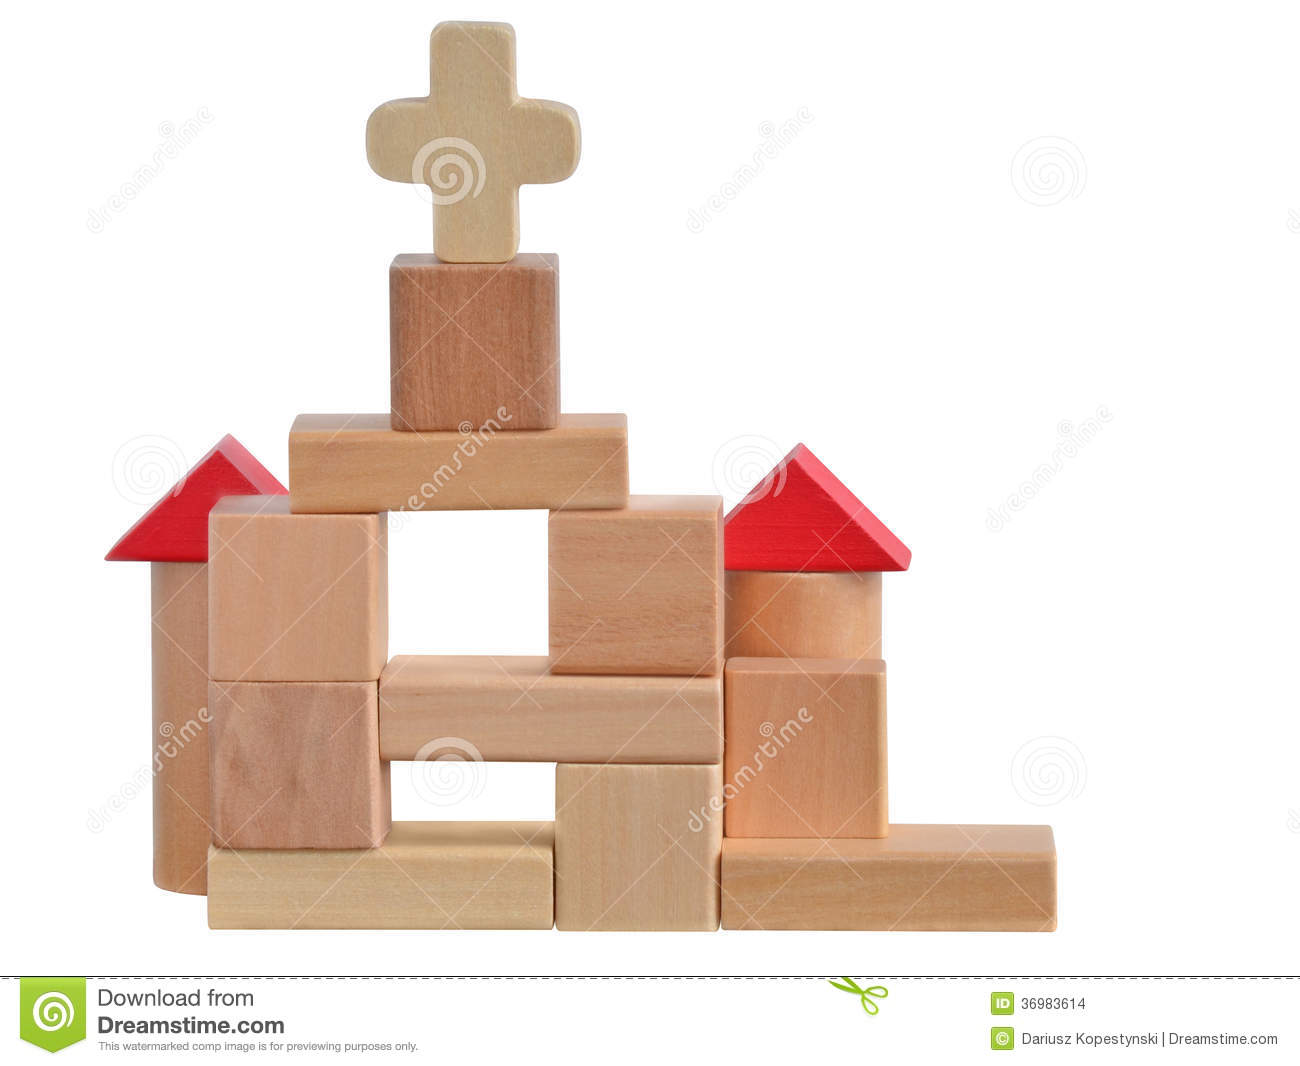 Toys For Church : Church blocks toy stock images image